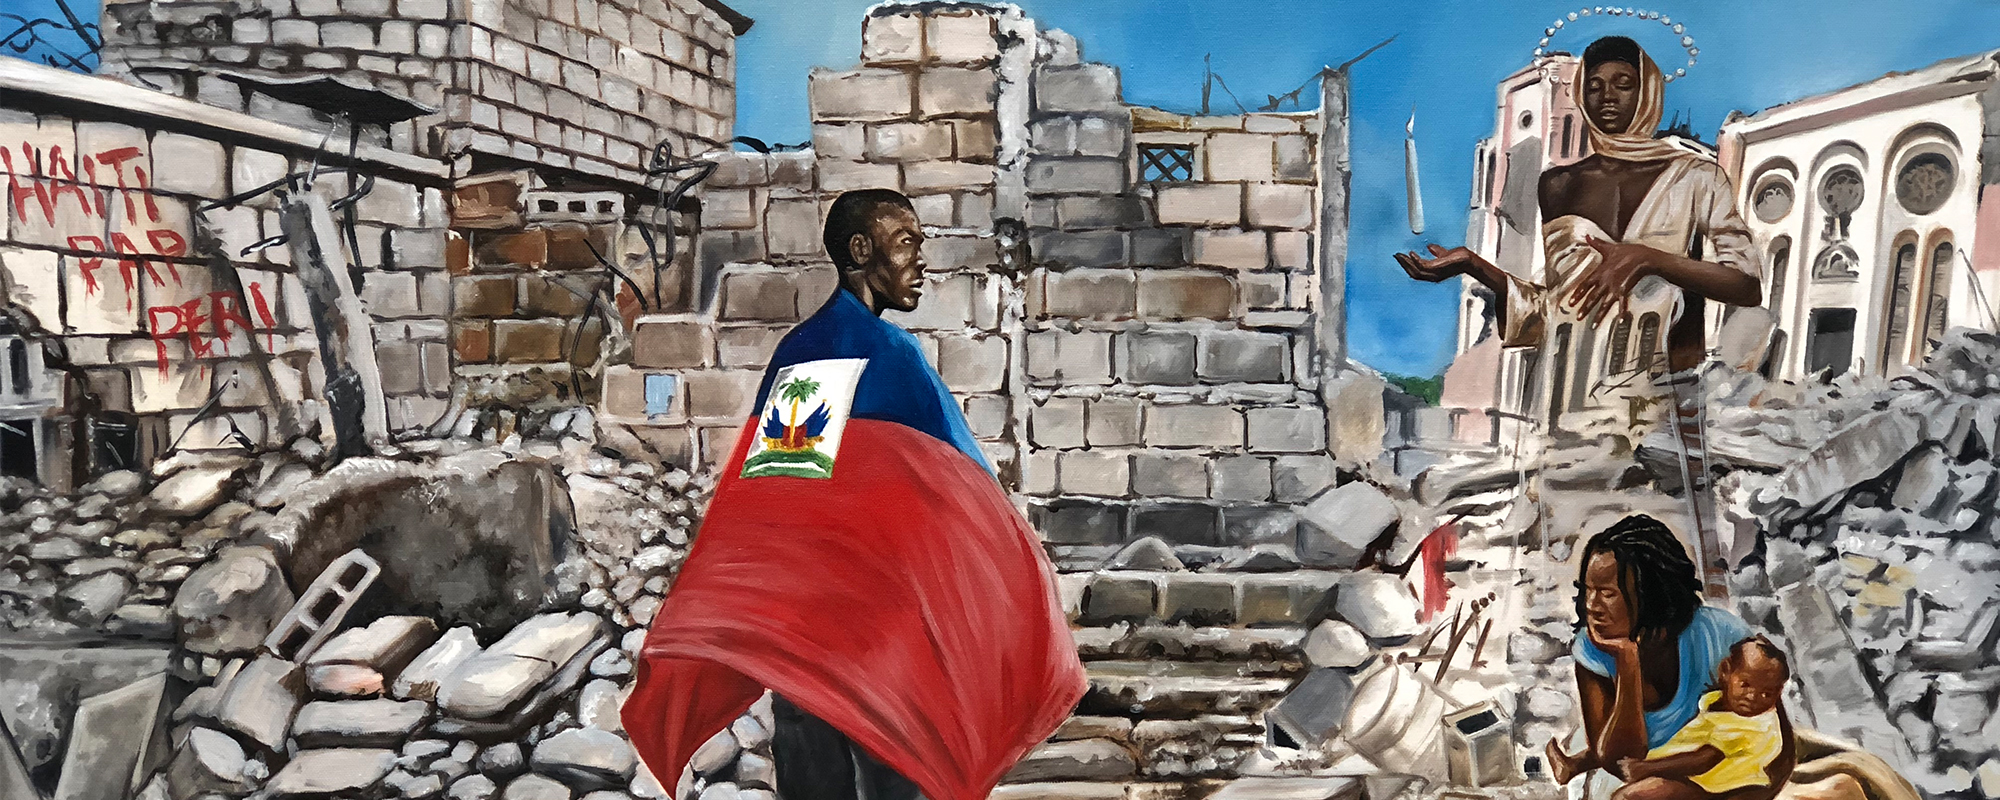 Haitian Rubble Painting - Artwork by Haitian Visual Artist in Roselle, NJ, Kervin Andre